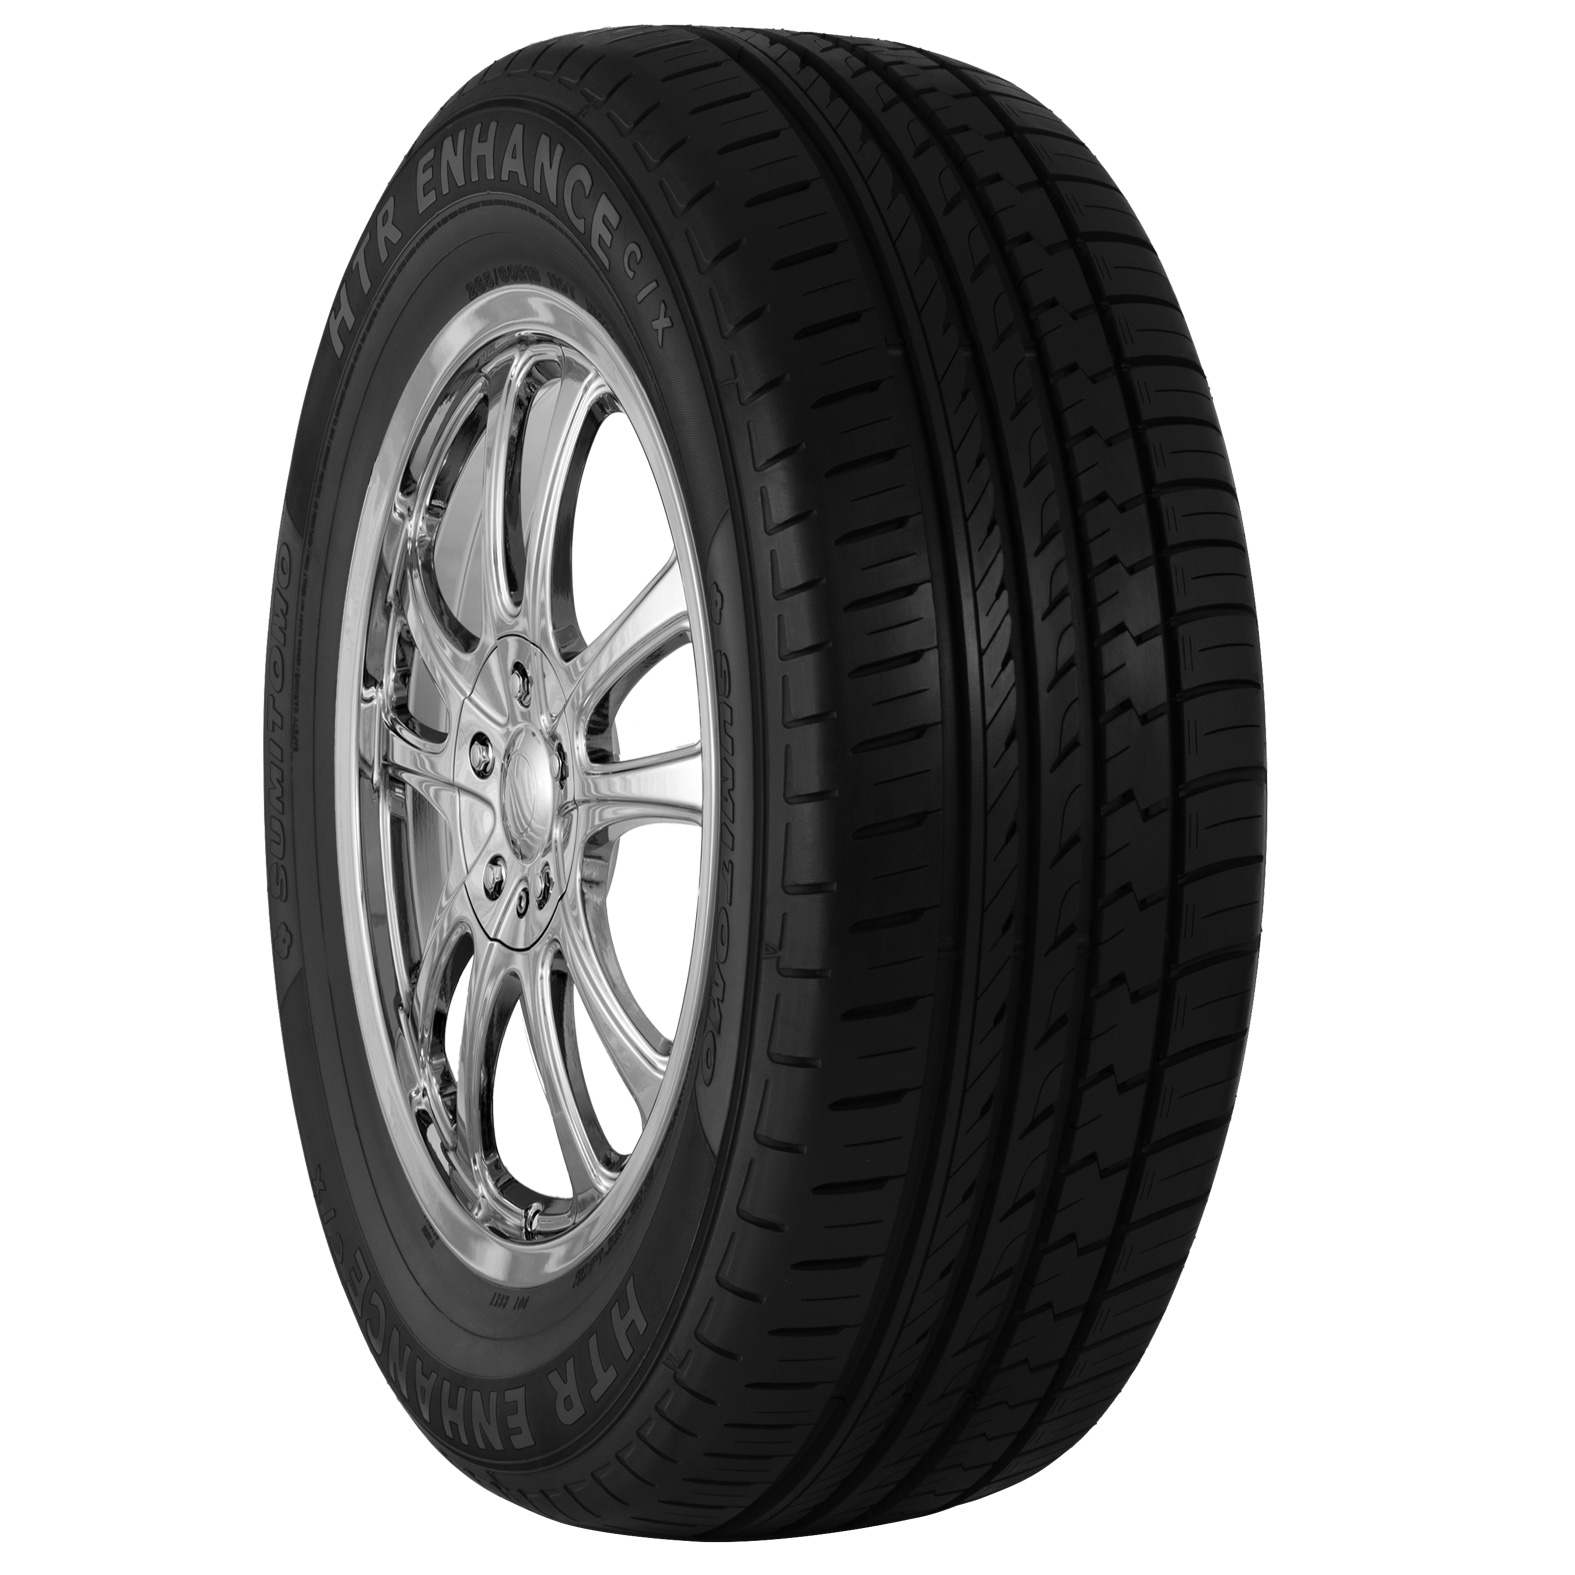 Sumitomo HTR Enhance CX2 tire – angle